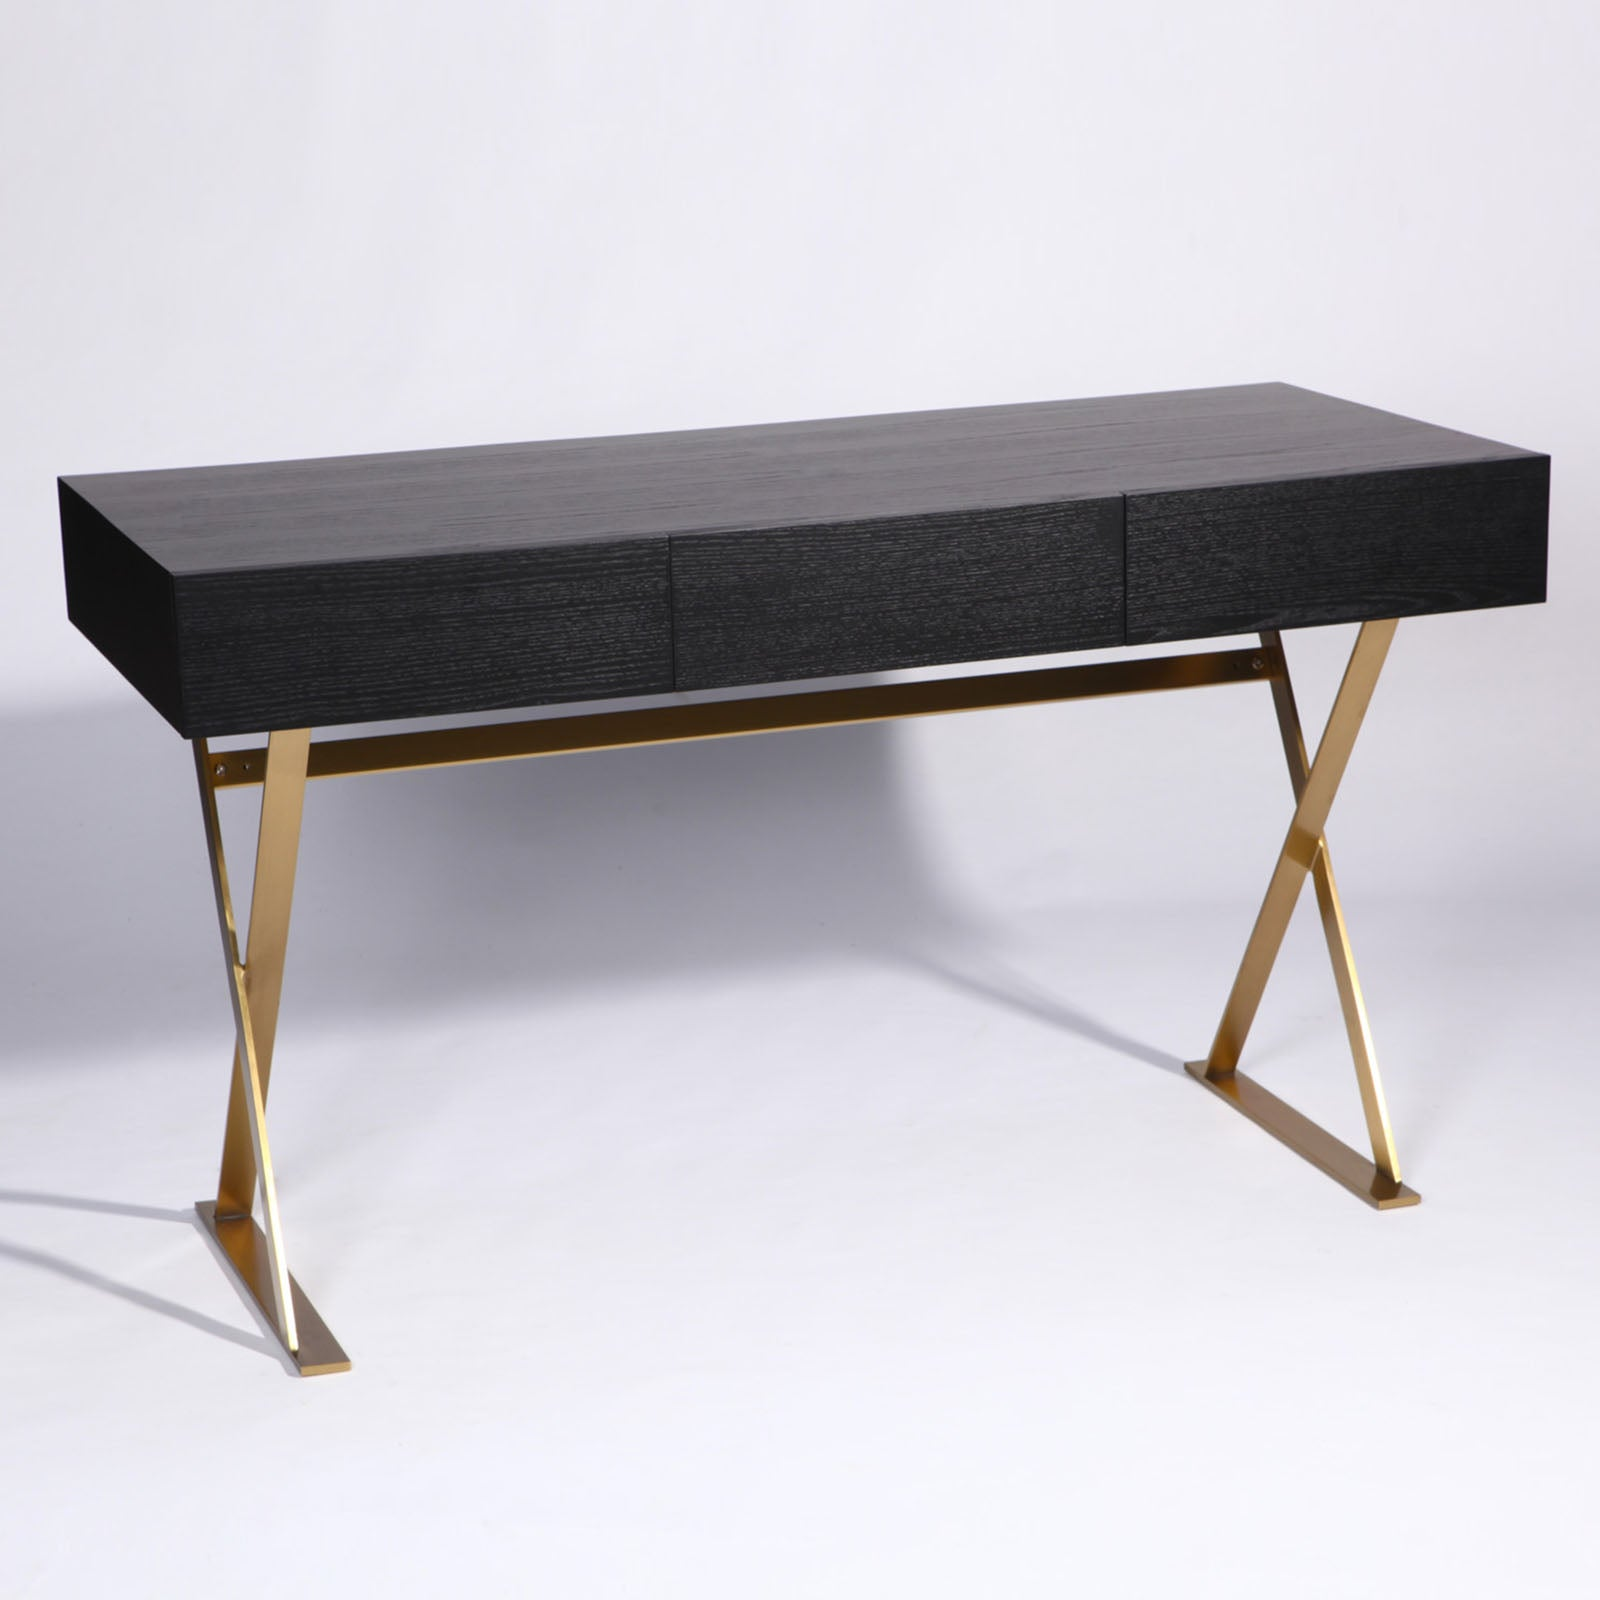 Pre-Order 15 days delivery  Harmony Console\Desk  140 cm BSZ16280B-B